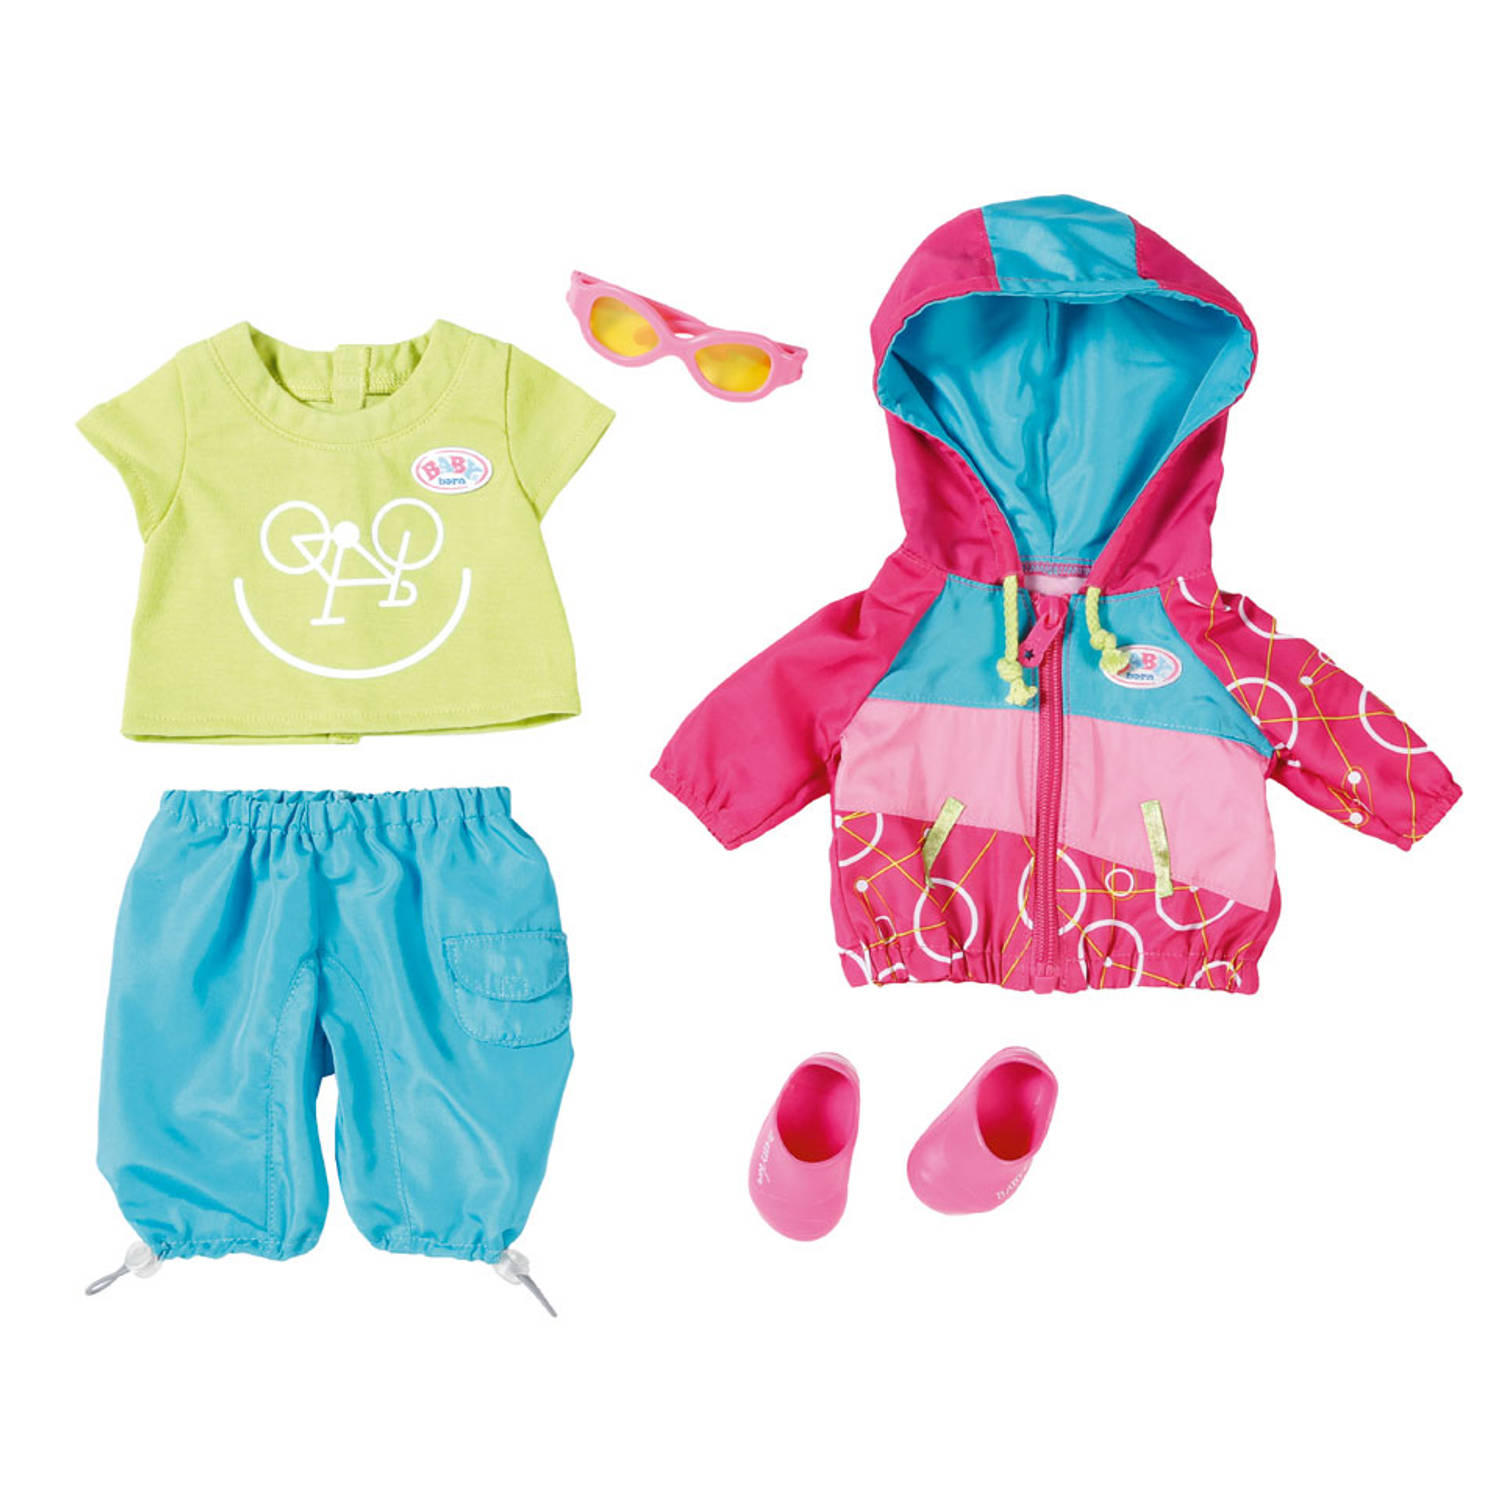 BABY BORN FIETS OUTFIT